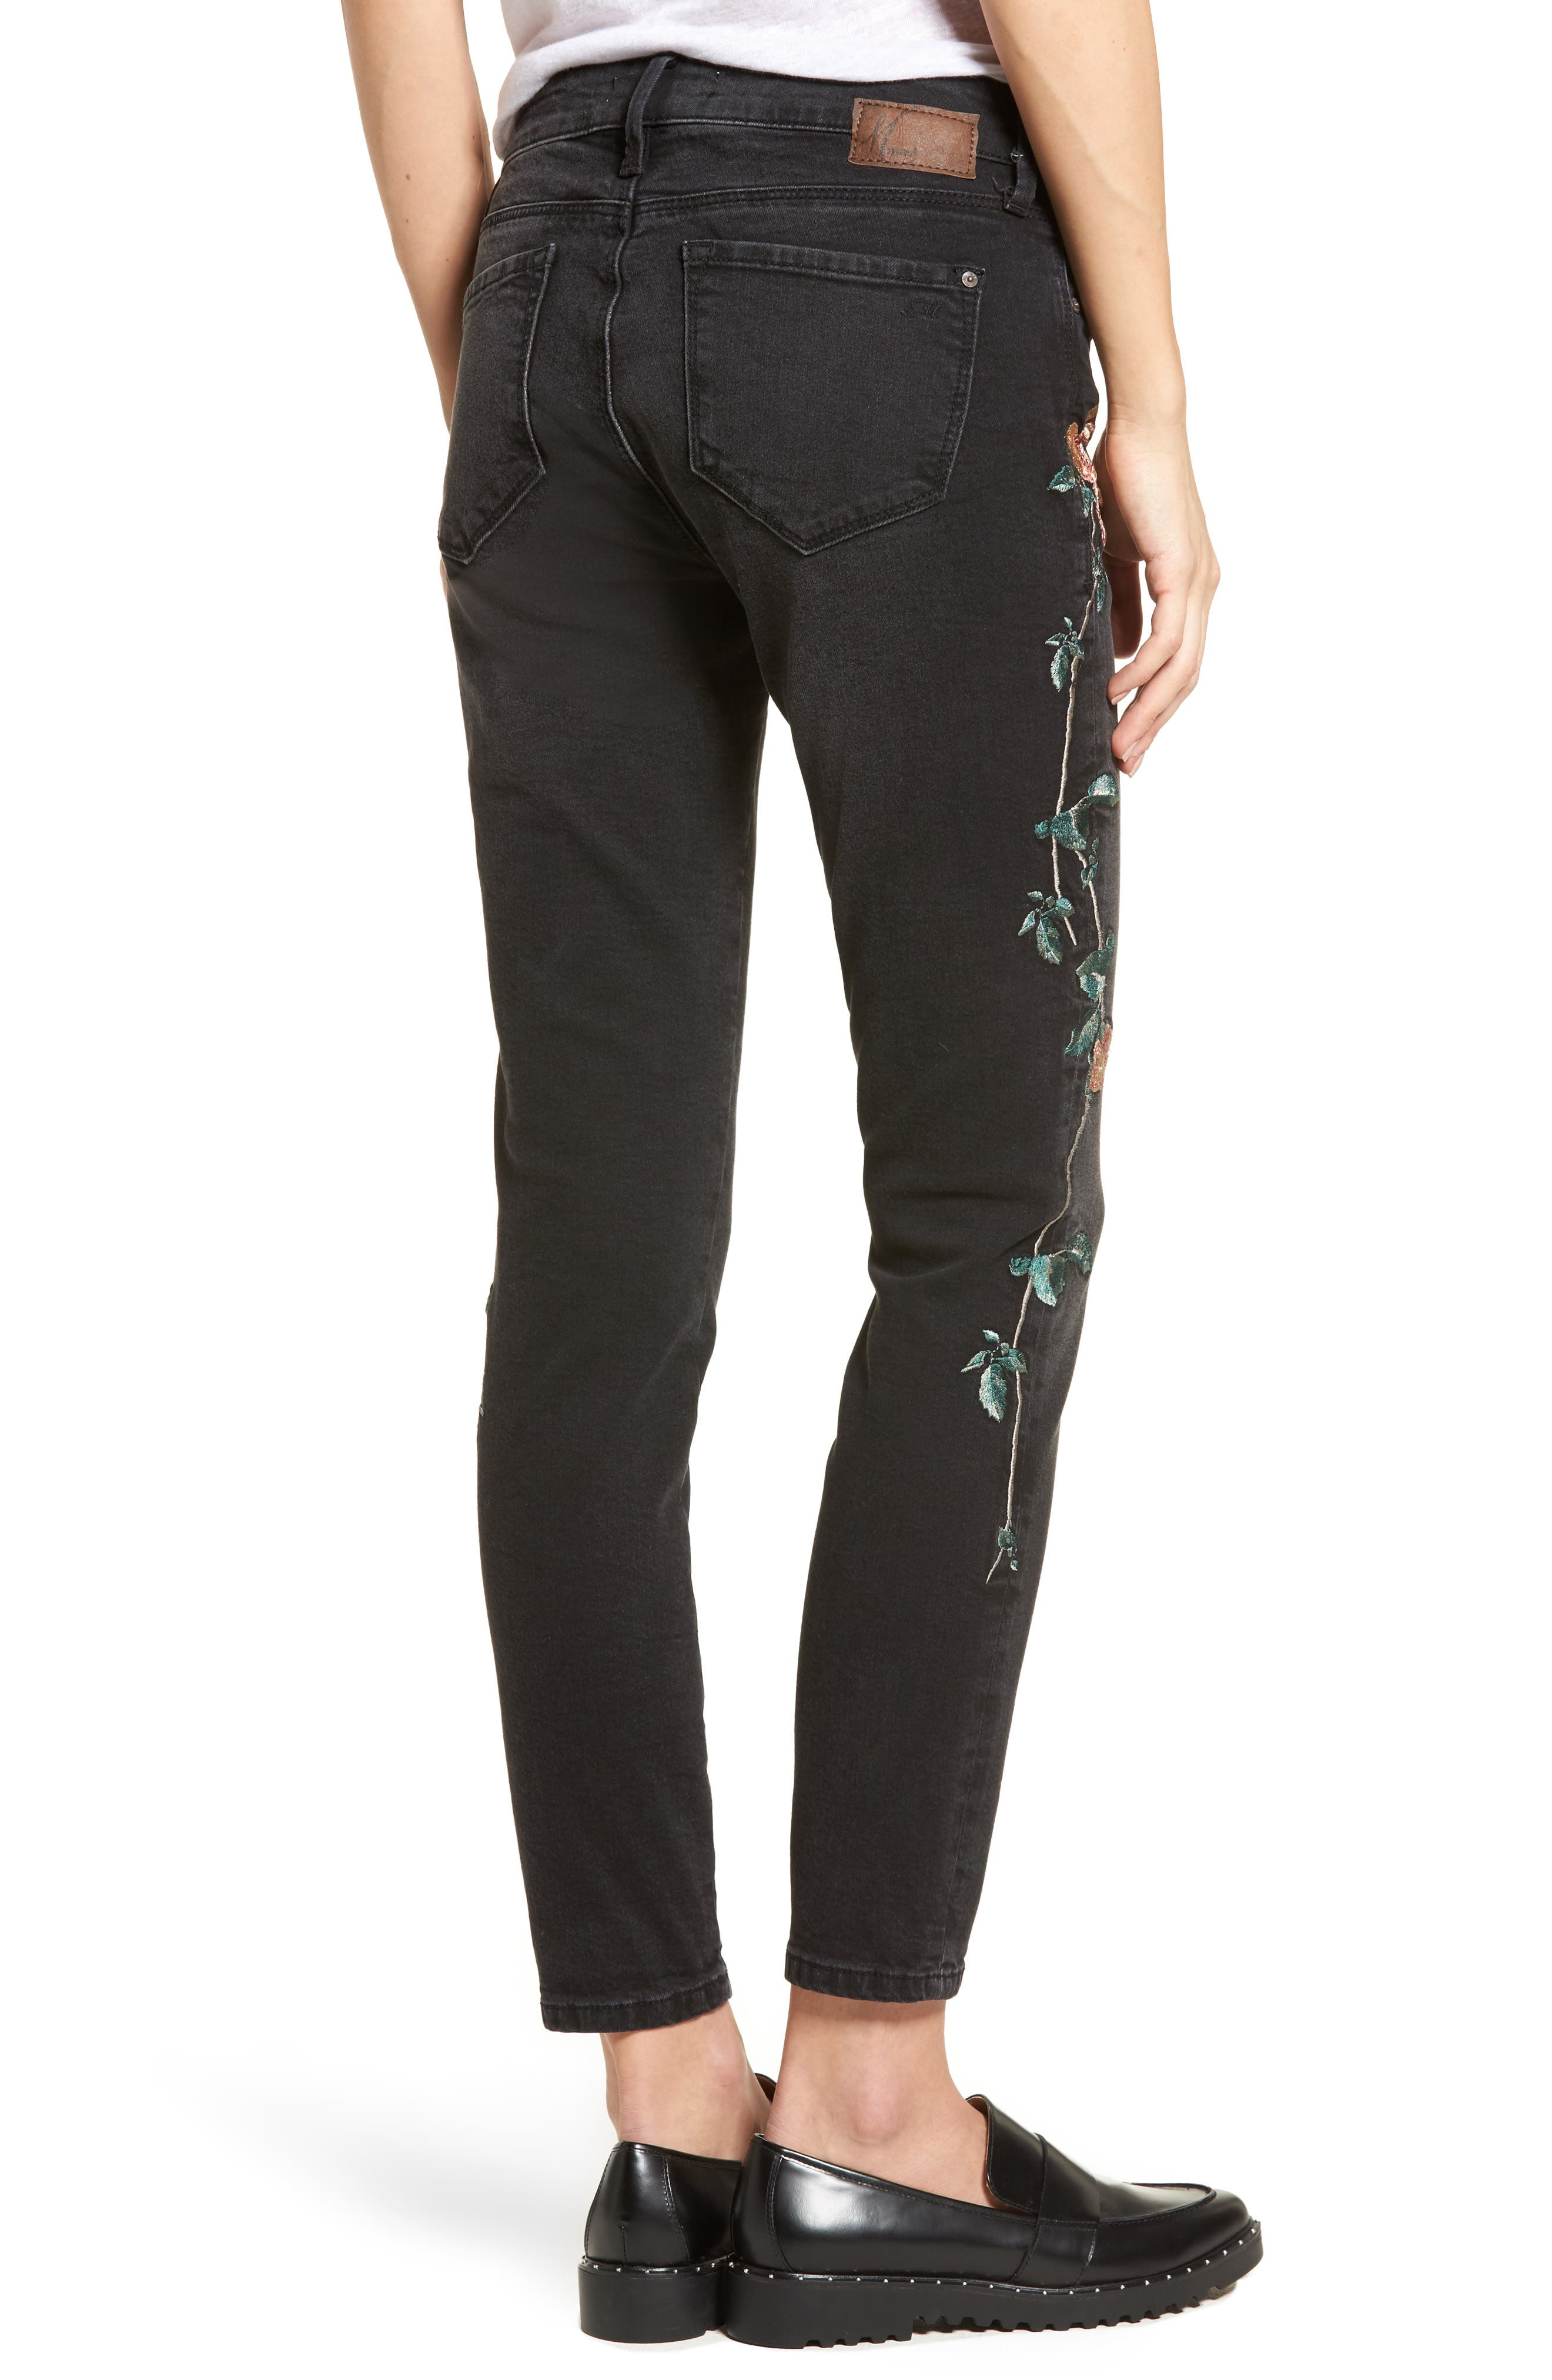 Adriana Embroidered Skinny Jeans,                             Alternate thumbnail 2, color,                             002